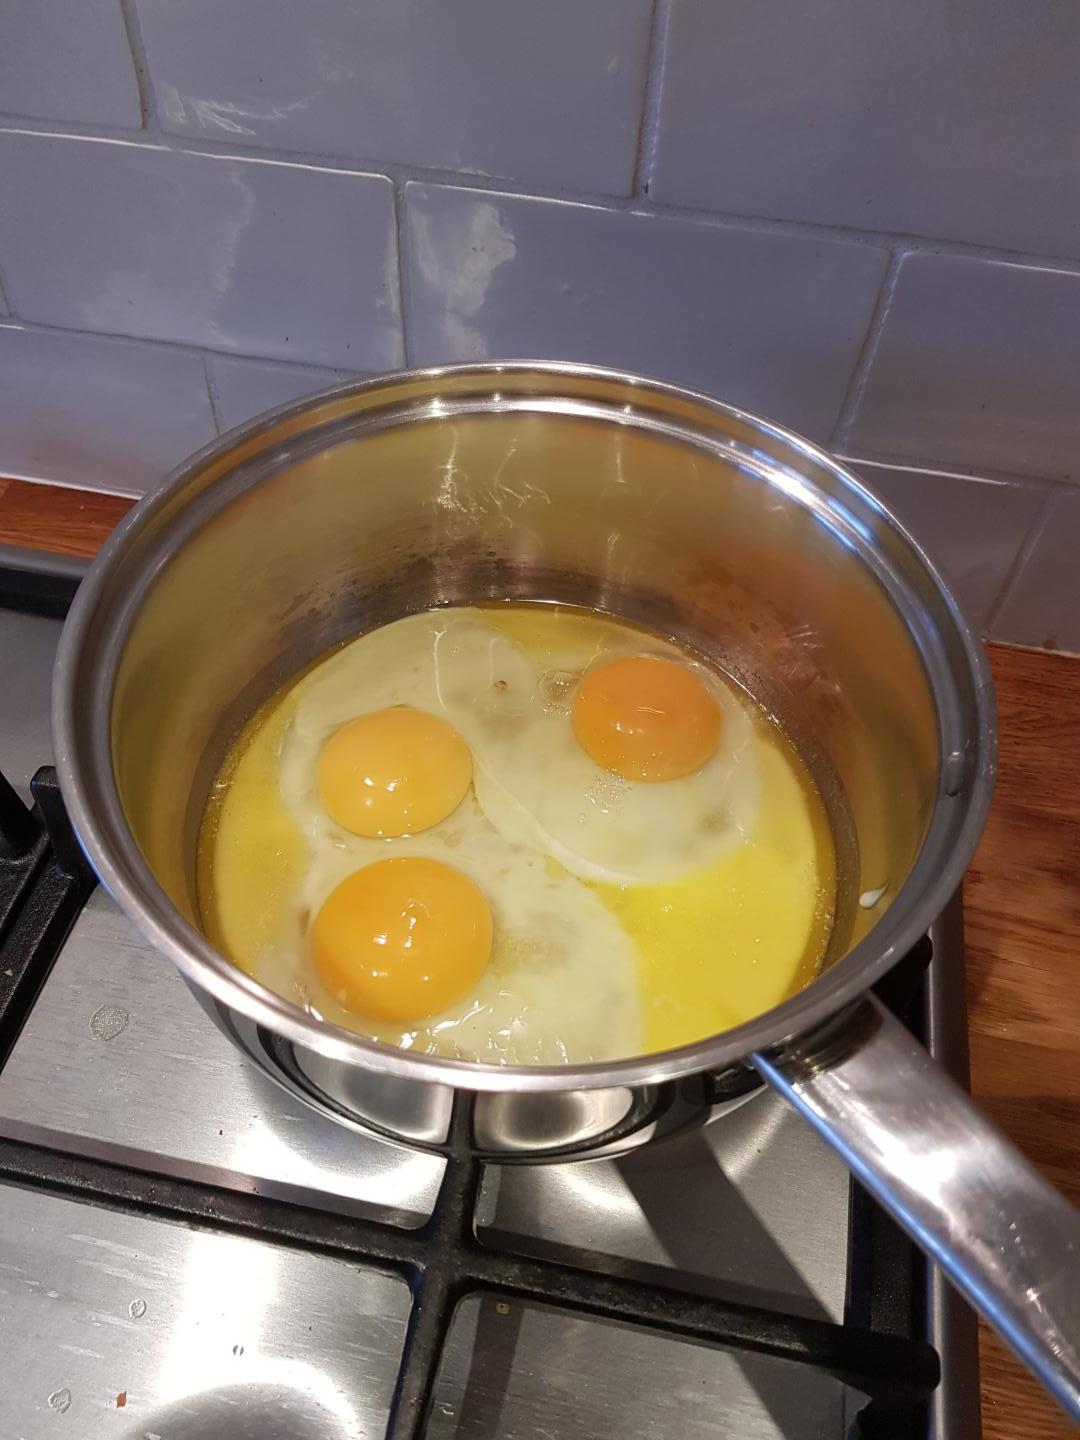 2: Start to cook the eggs in the butter.